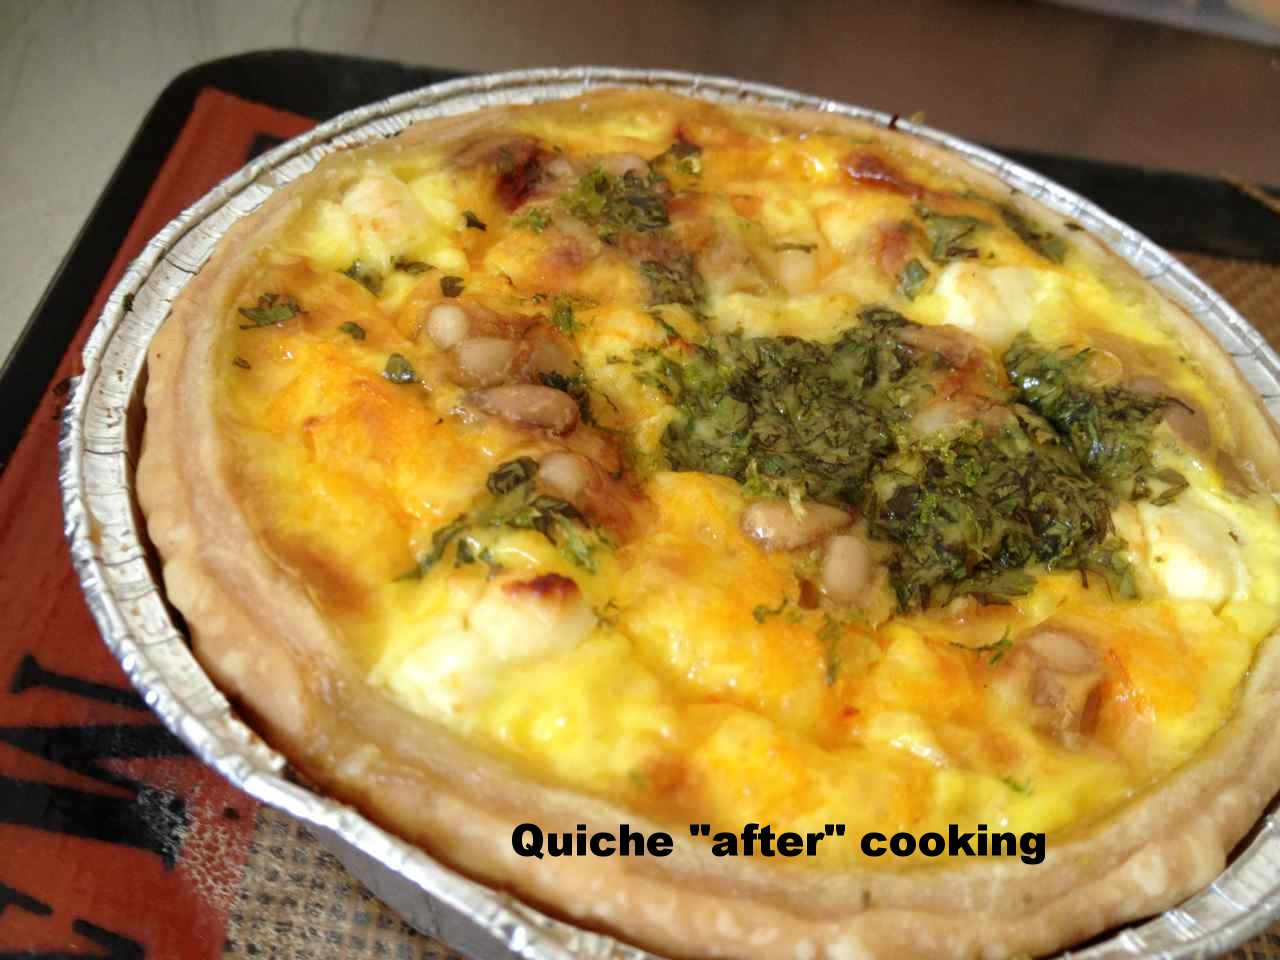 lesson 2  quiche cooked.jpg